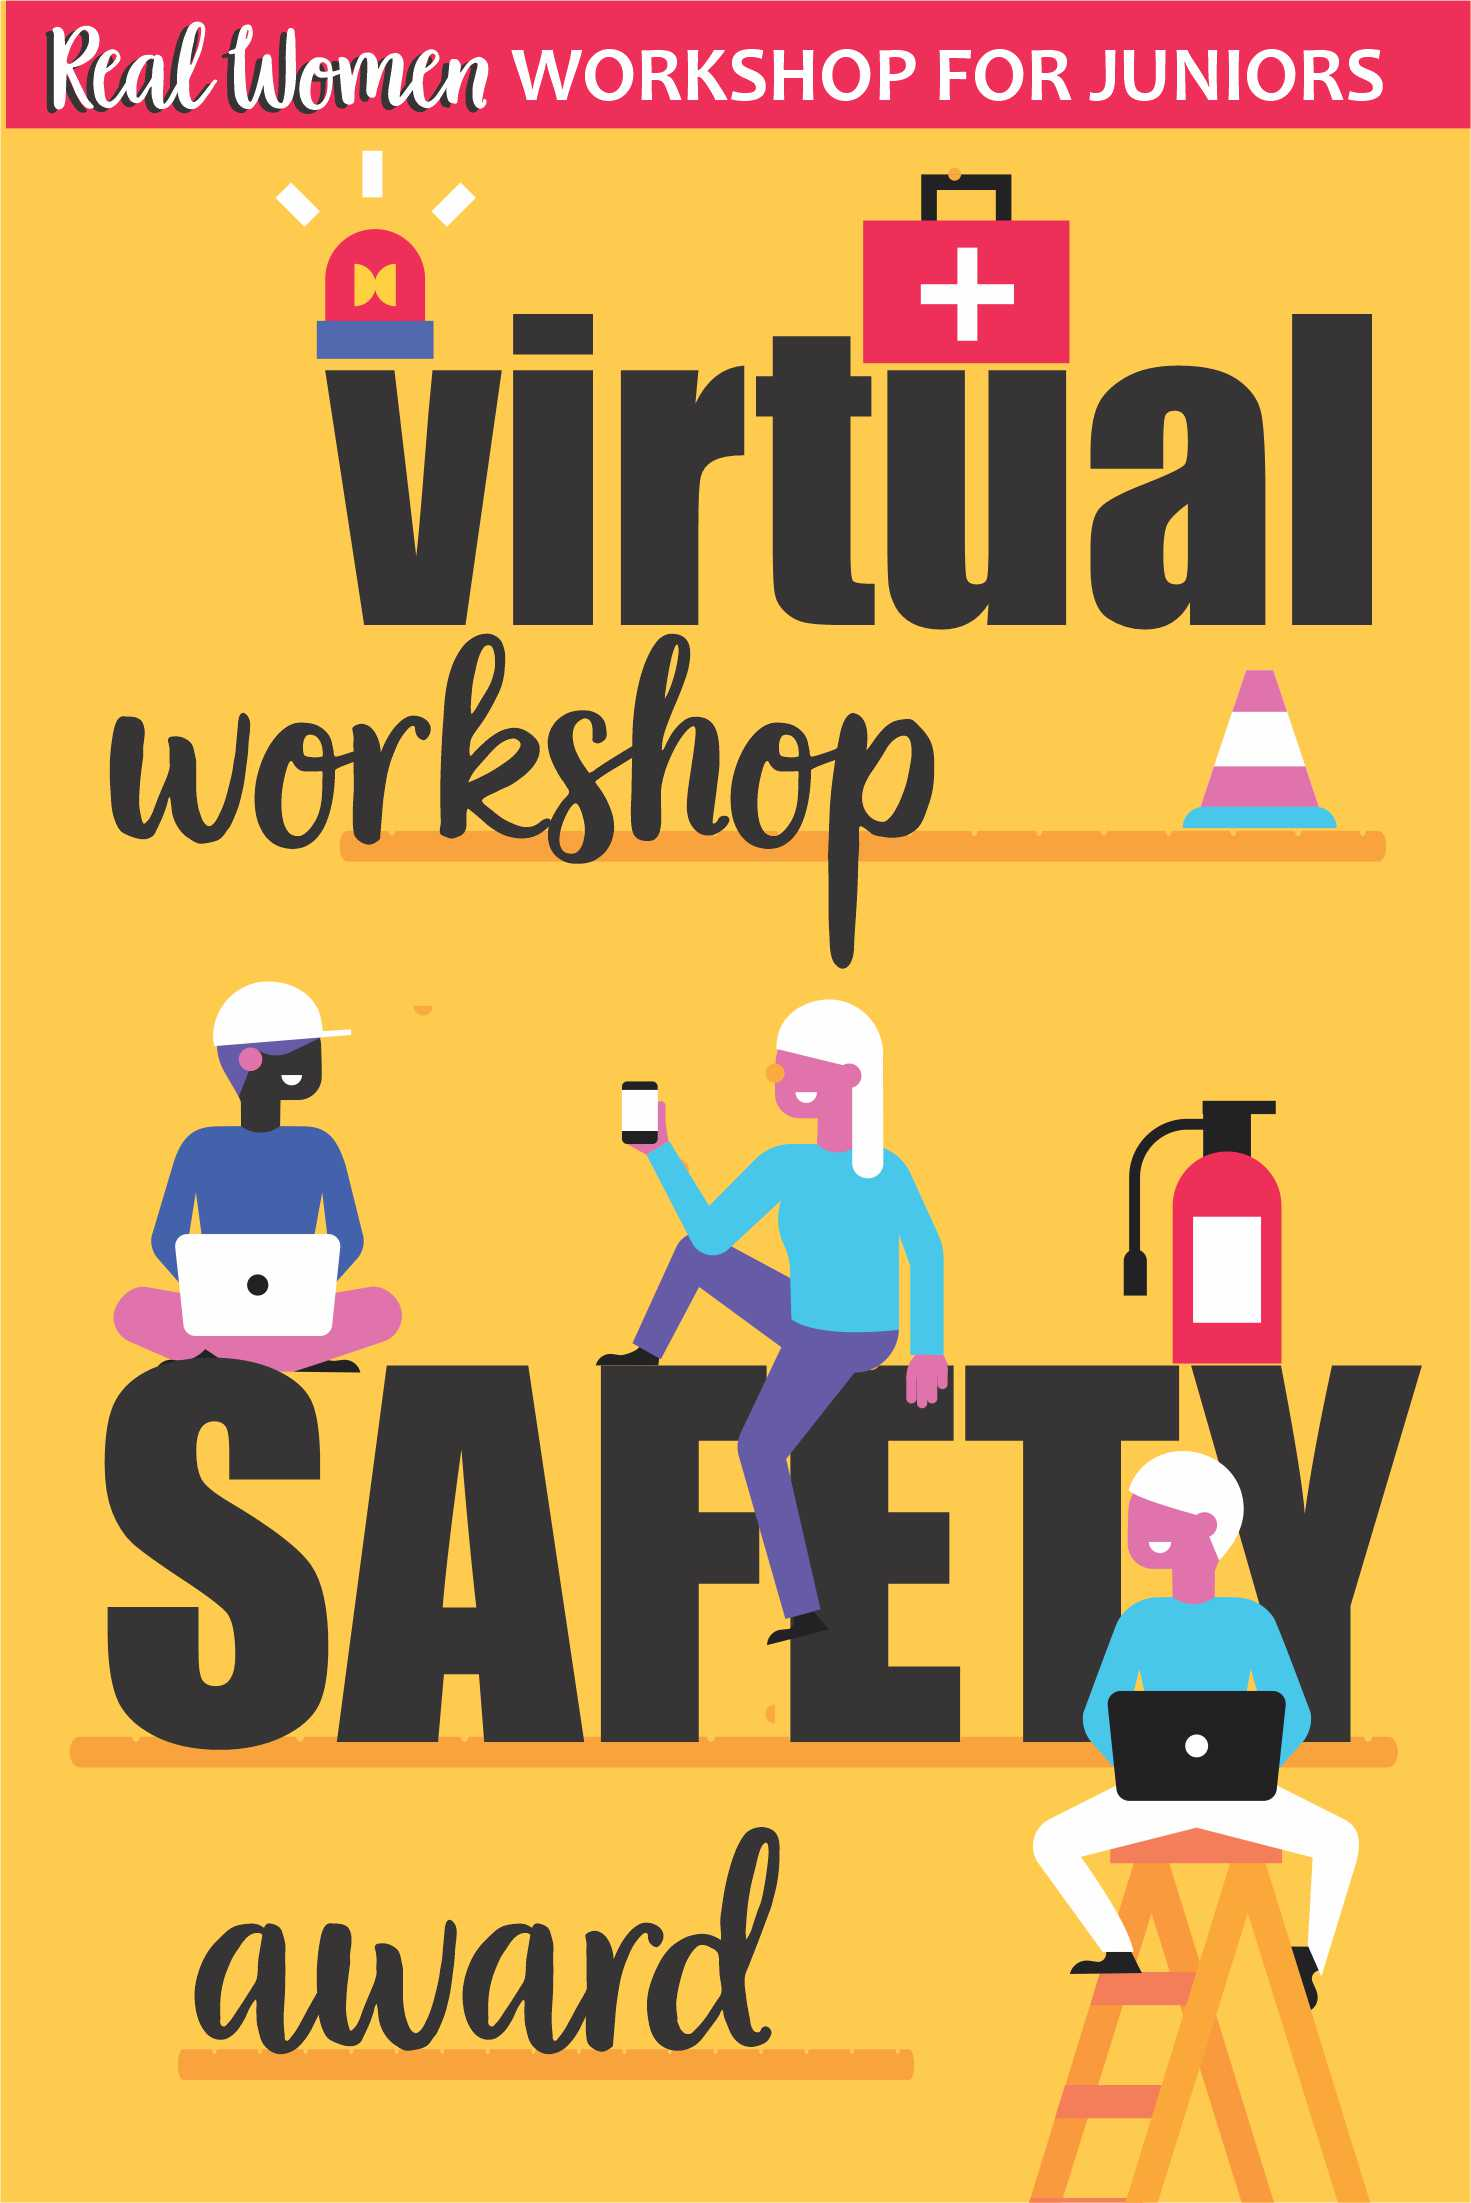 Girl Scout Virtual Safety Award for Juniors via @gsleader411